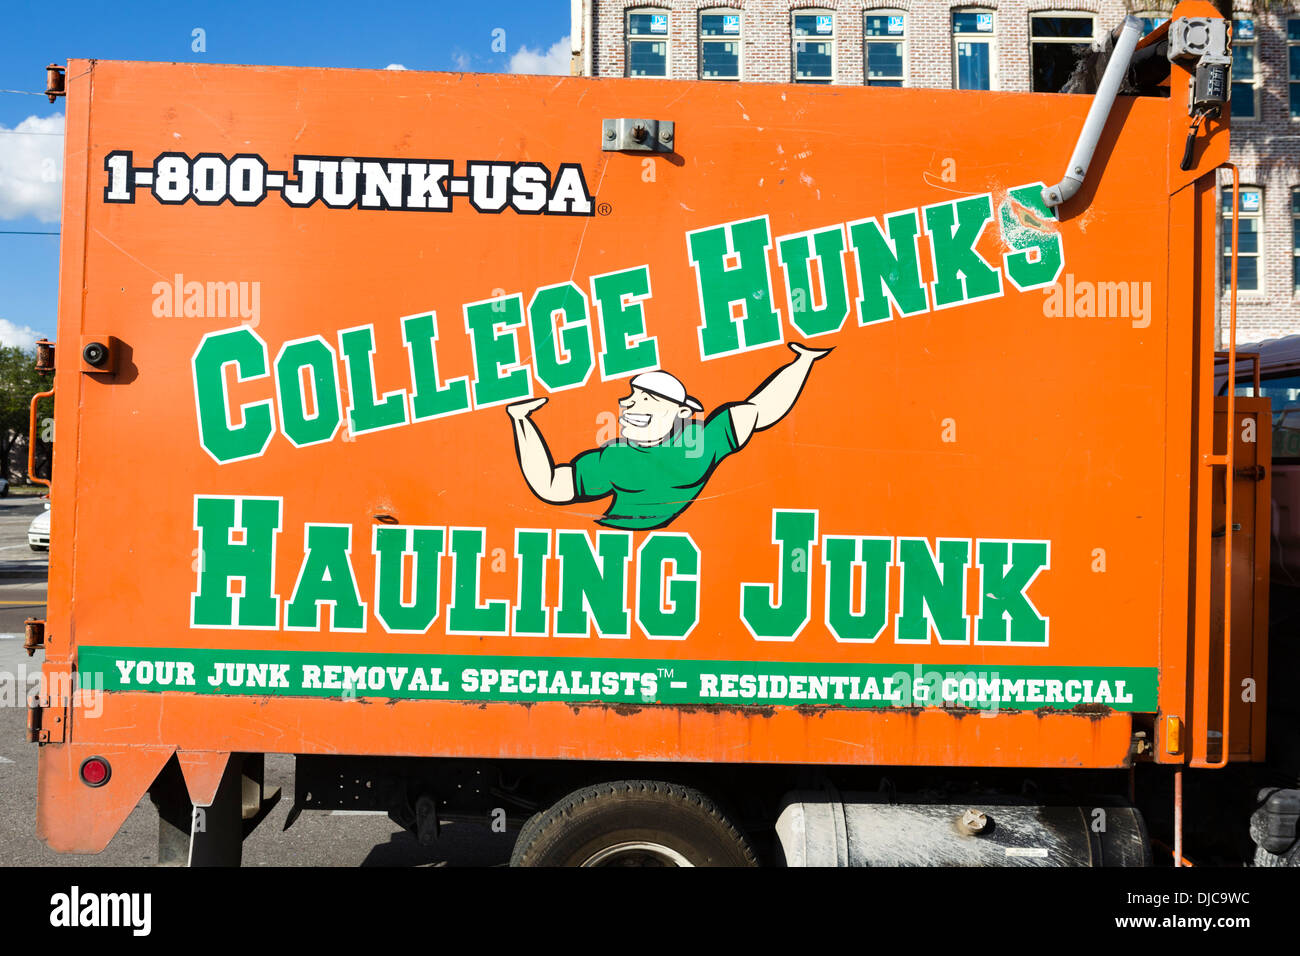 junk removal tampa jdog removal truck for college hunks hauling junk ybor city tampa junk removal stock photos images alamy